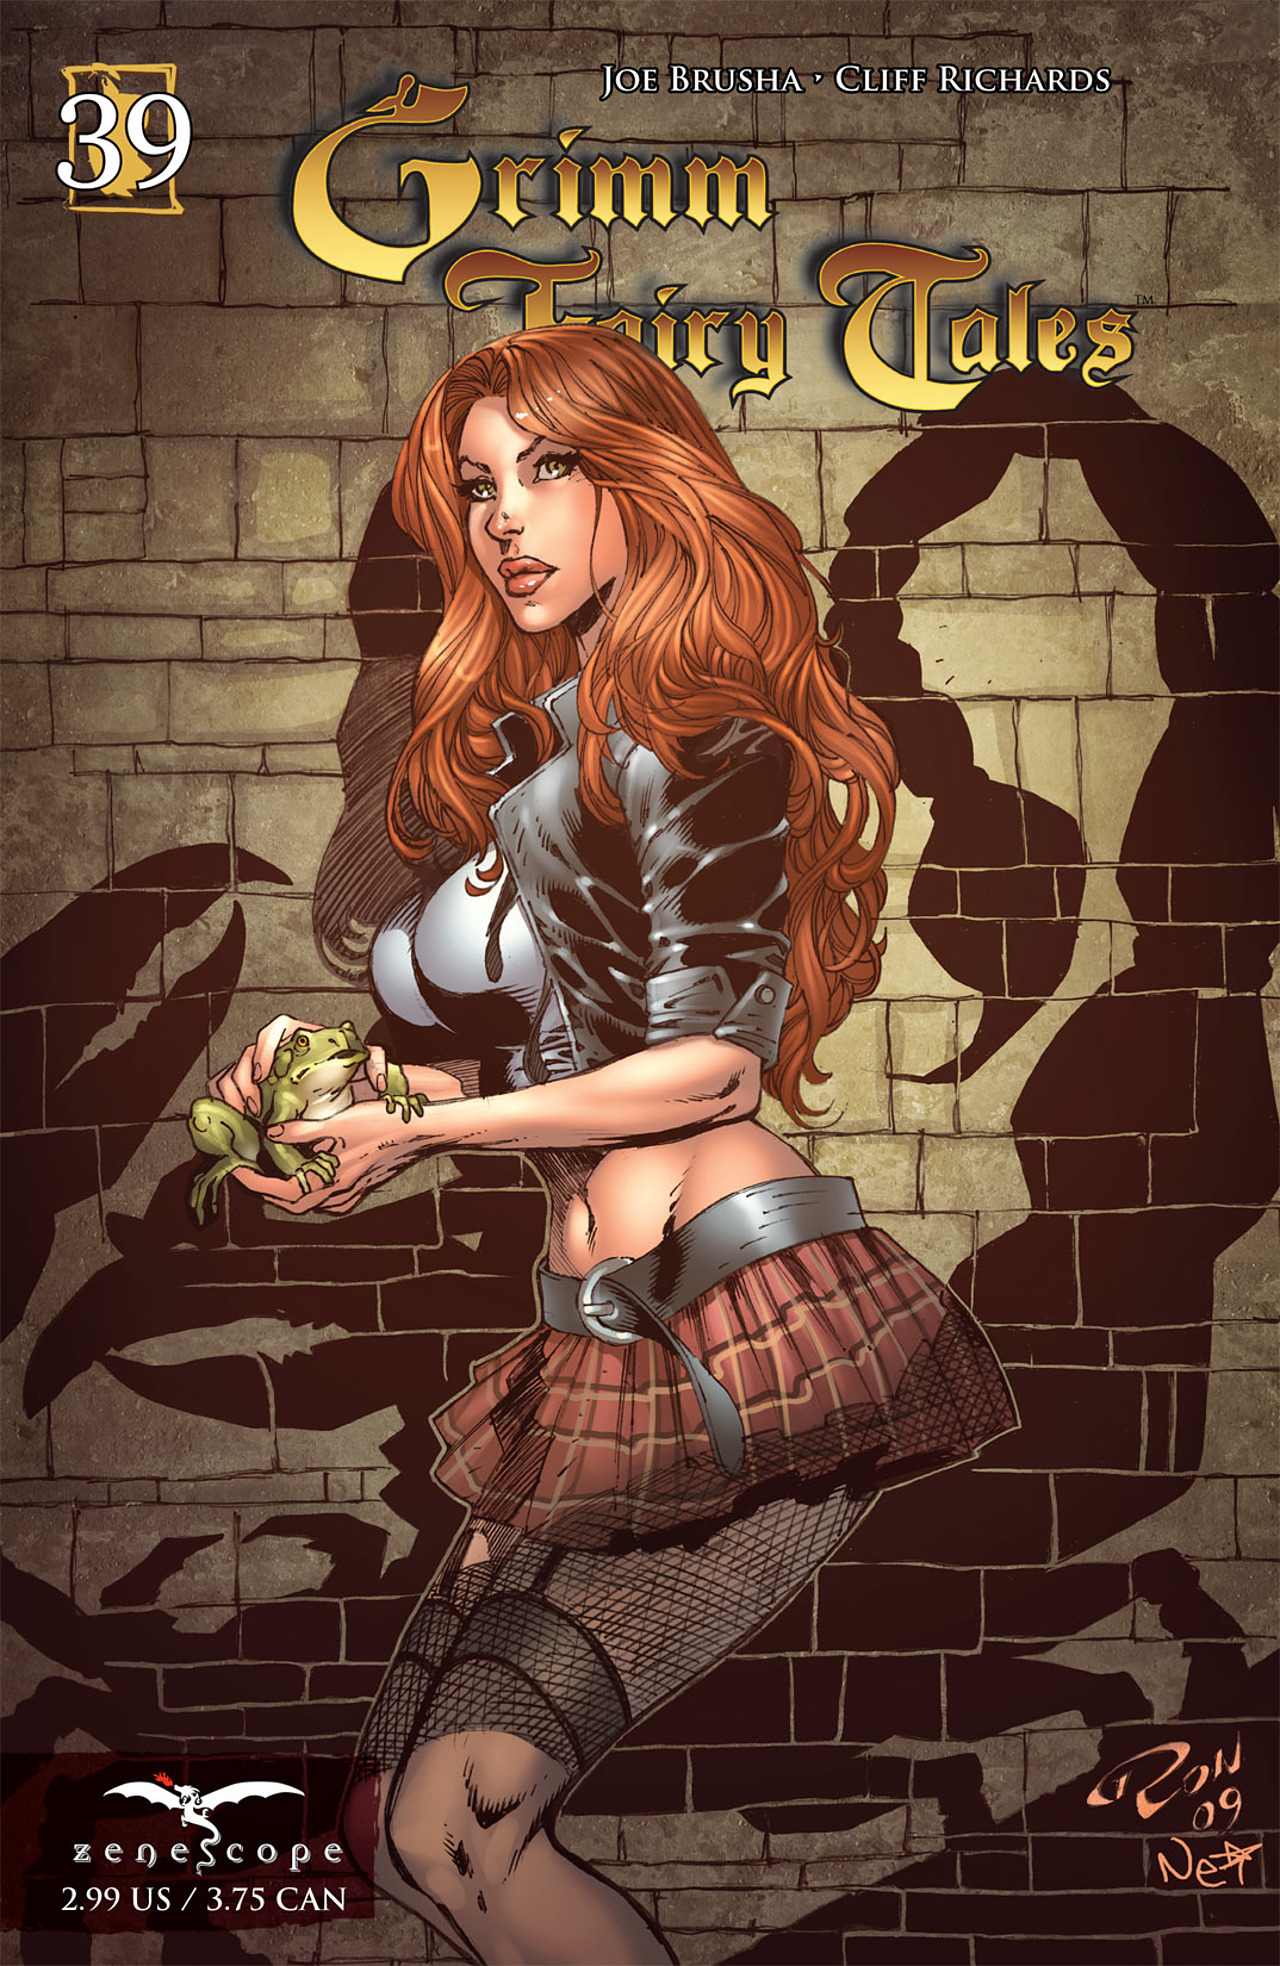 Grimm Fairy Tales (2005) Issue #39 #42 - English 1